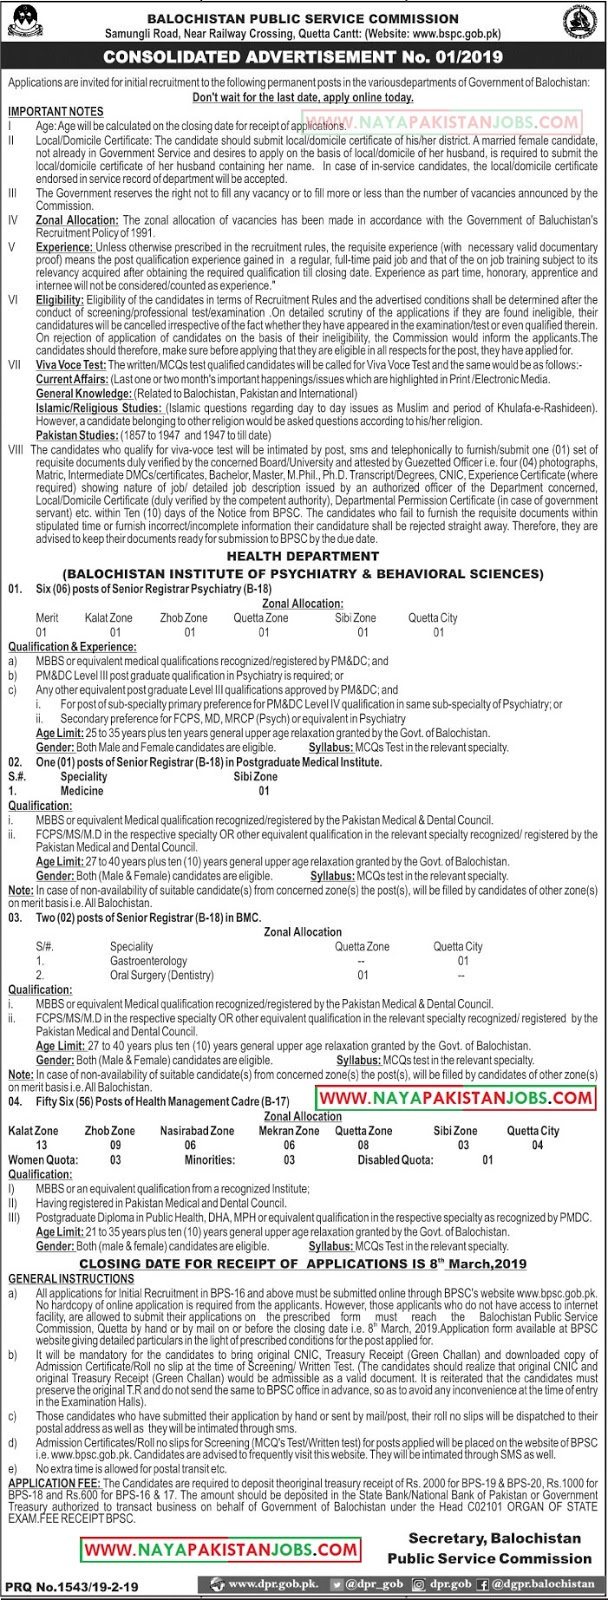 BPSC Jobs 2019, Balochistan Public Service Commission Jobs 2019 February